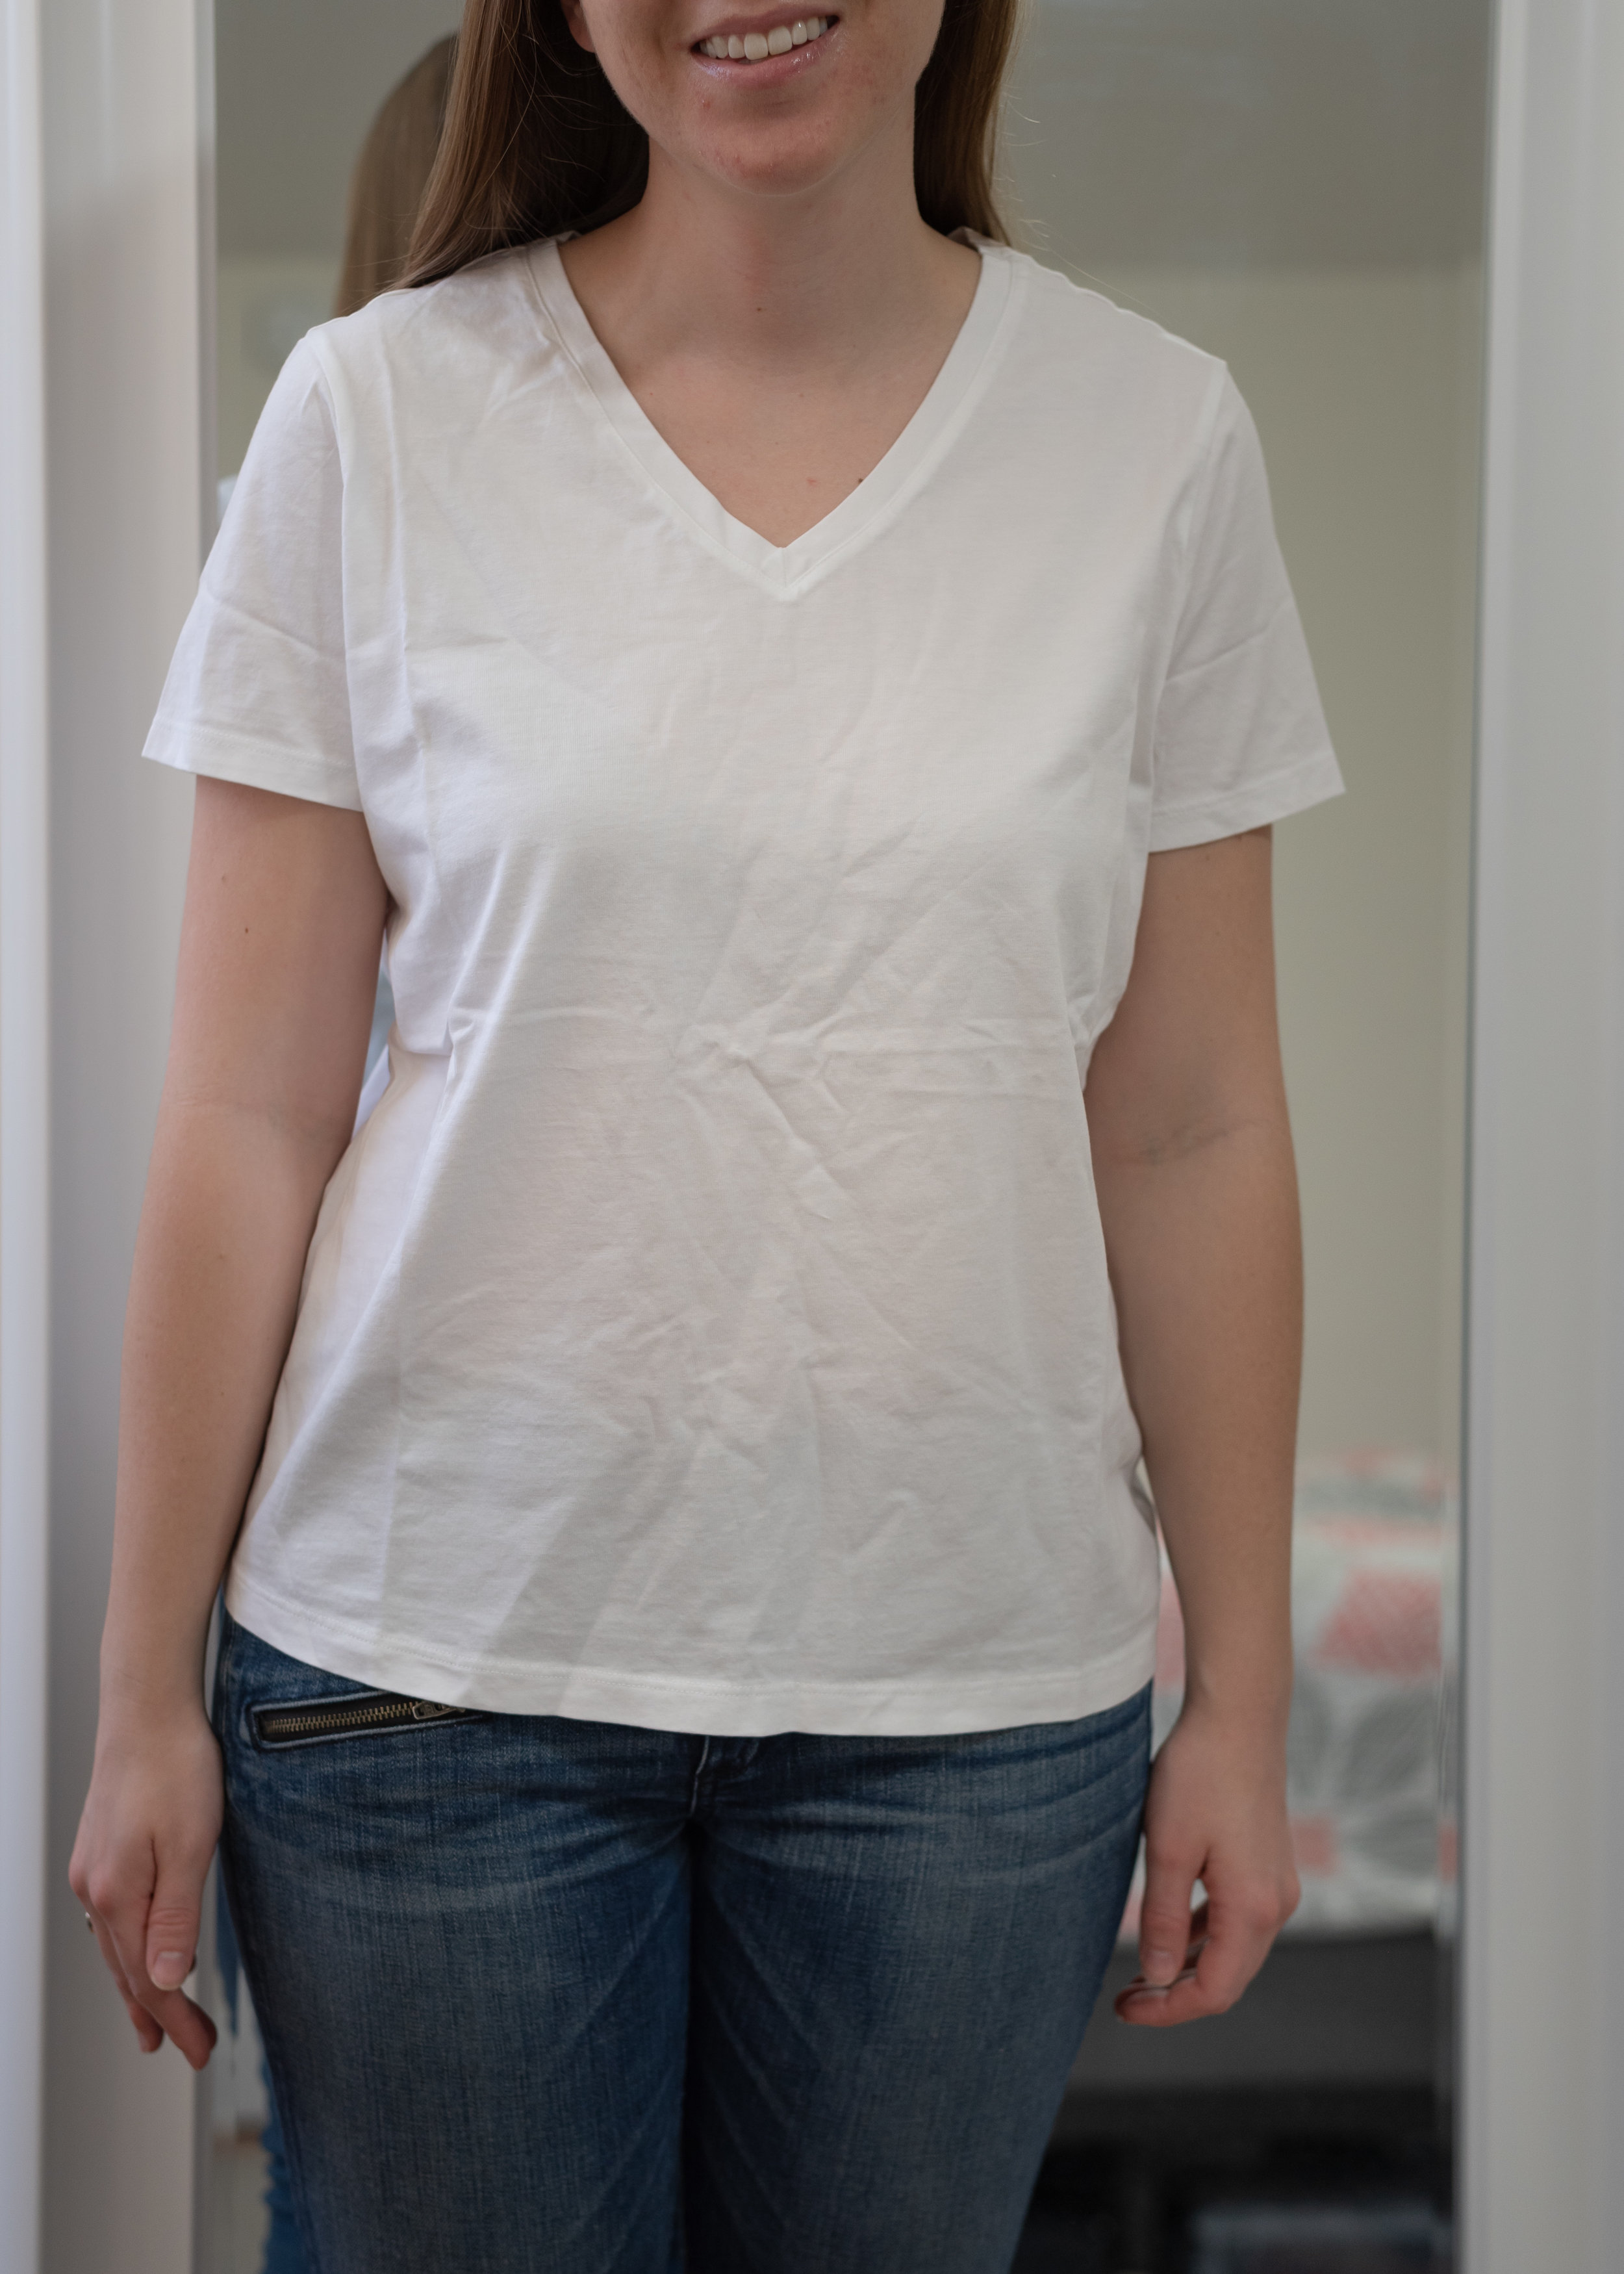 Lands' End Petite Supima Cotton Relaxed V-Neck T-Shirt - Size Petite Small